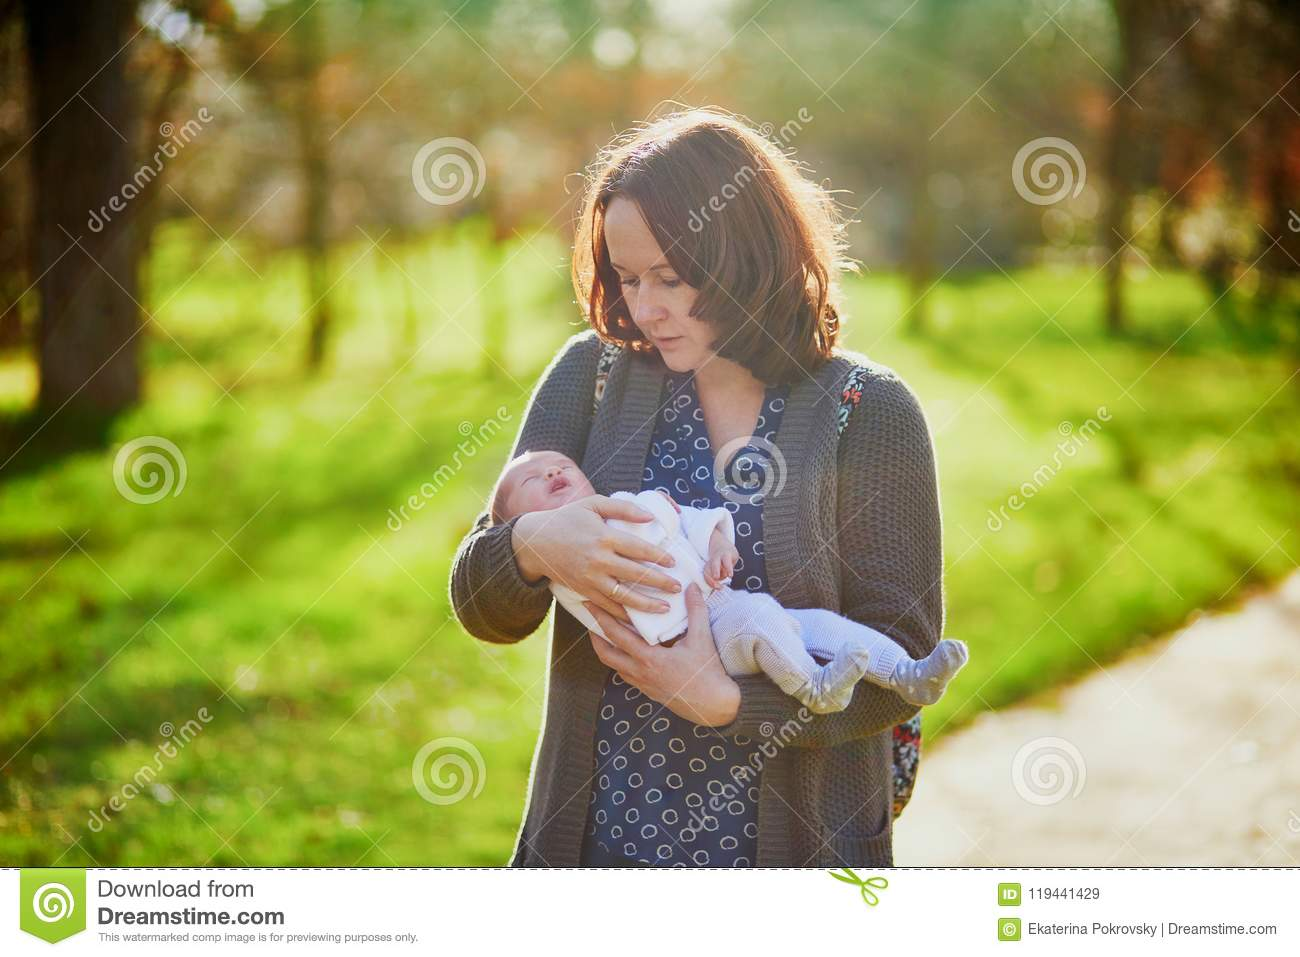 e6950a511 Mother holding 4 weeks old baby girl in her arms. 1 month old child in  mommy`s hands outdoors. First walk for a newborn